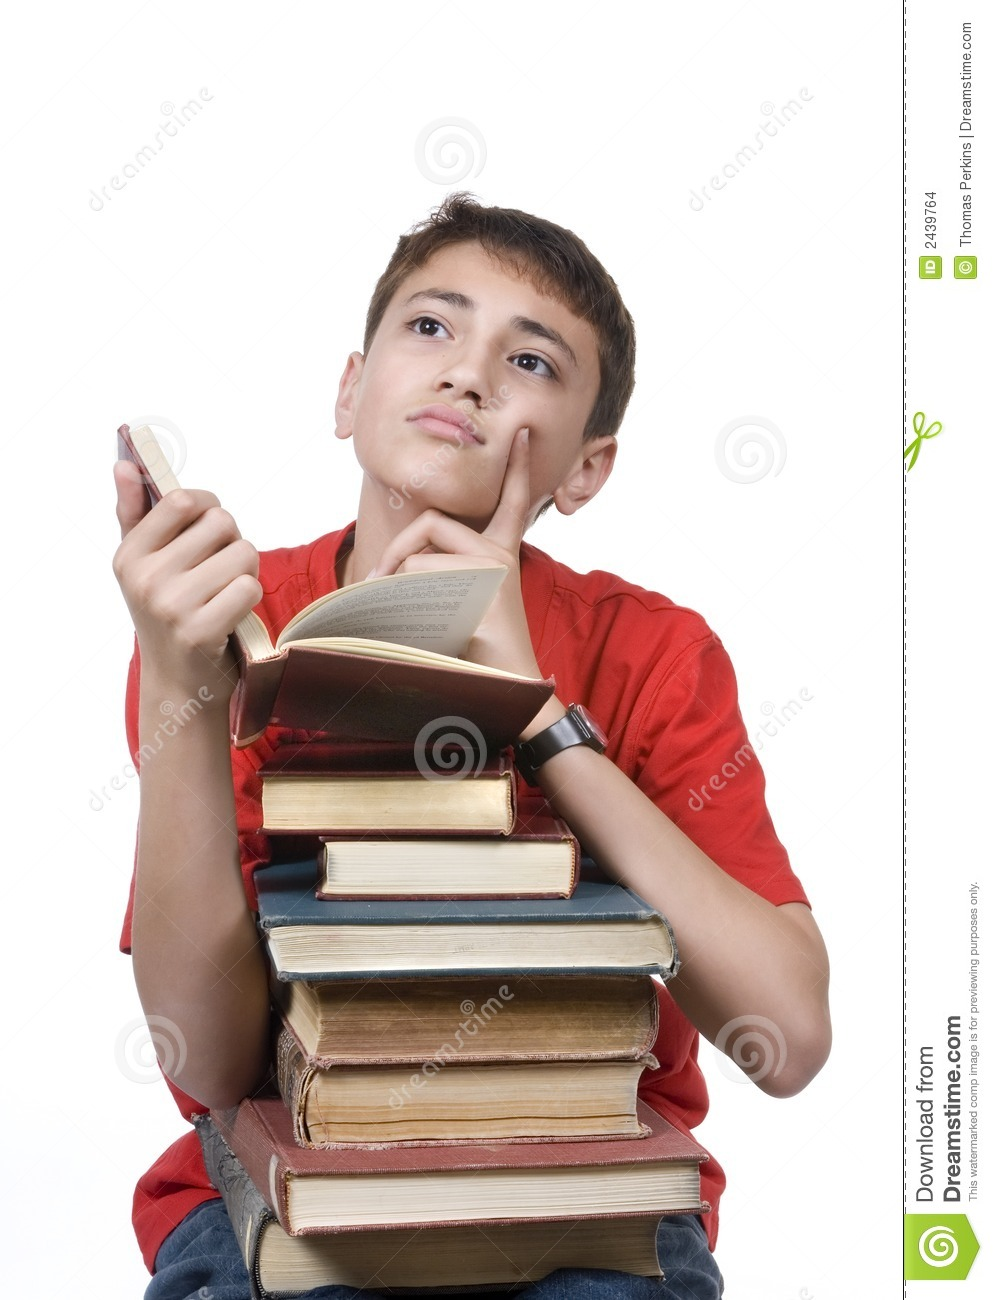 Boys and reading